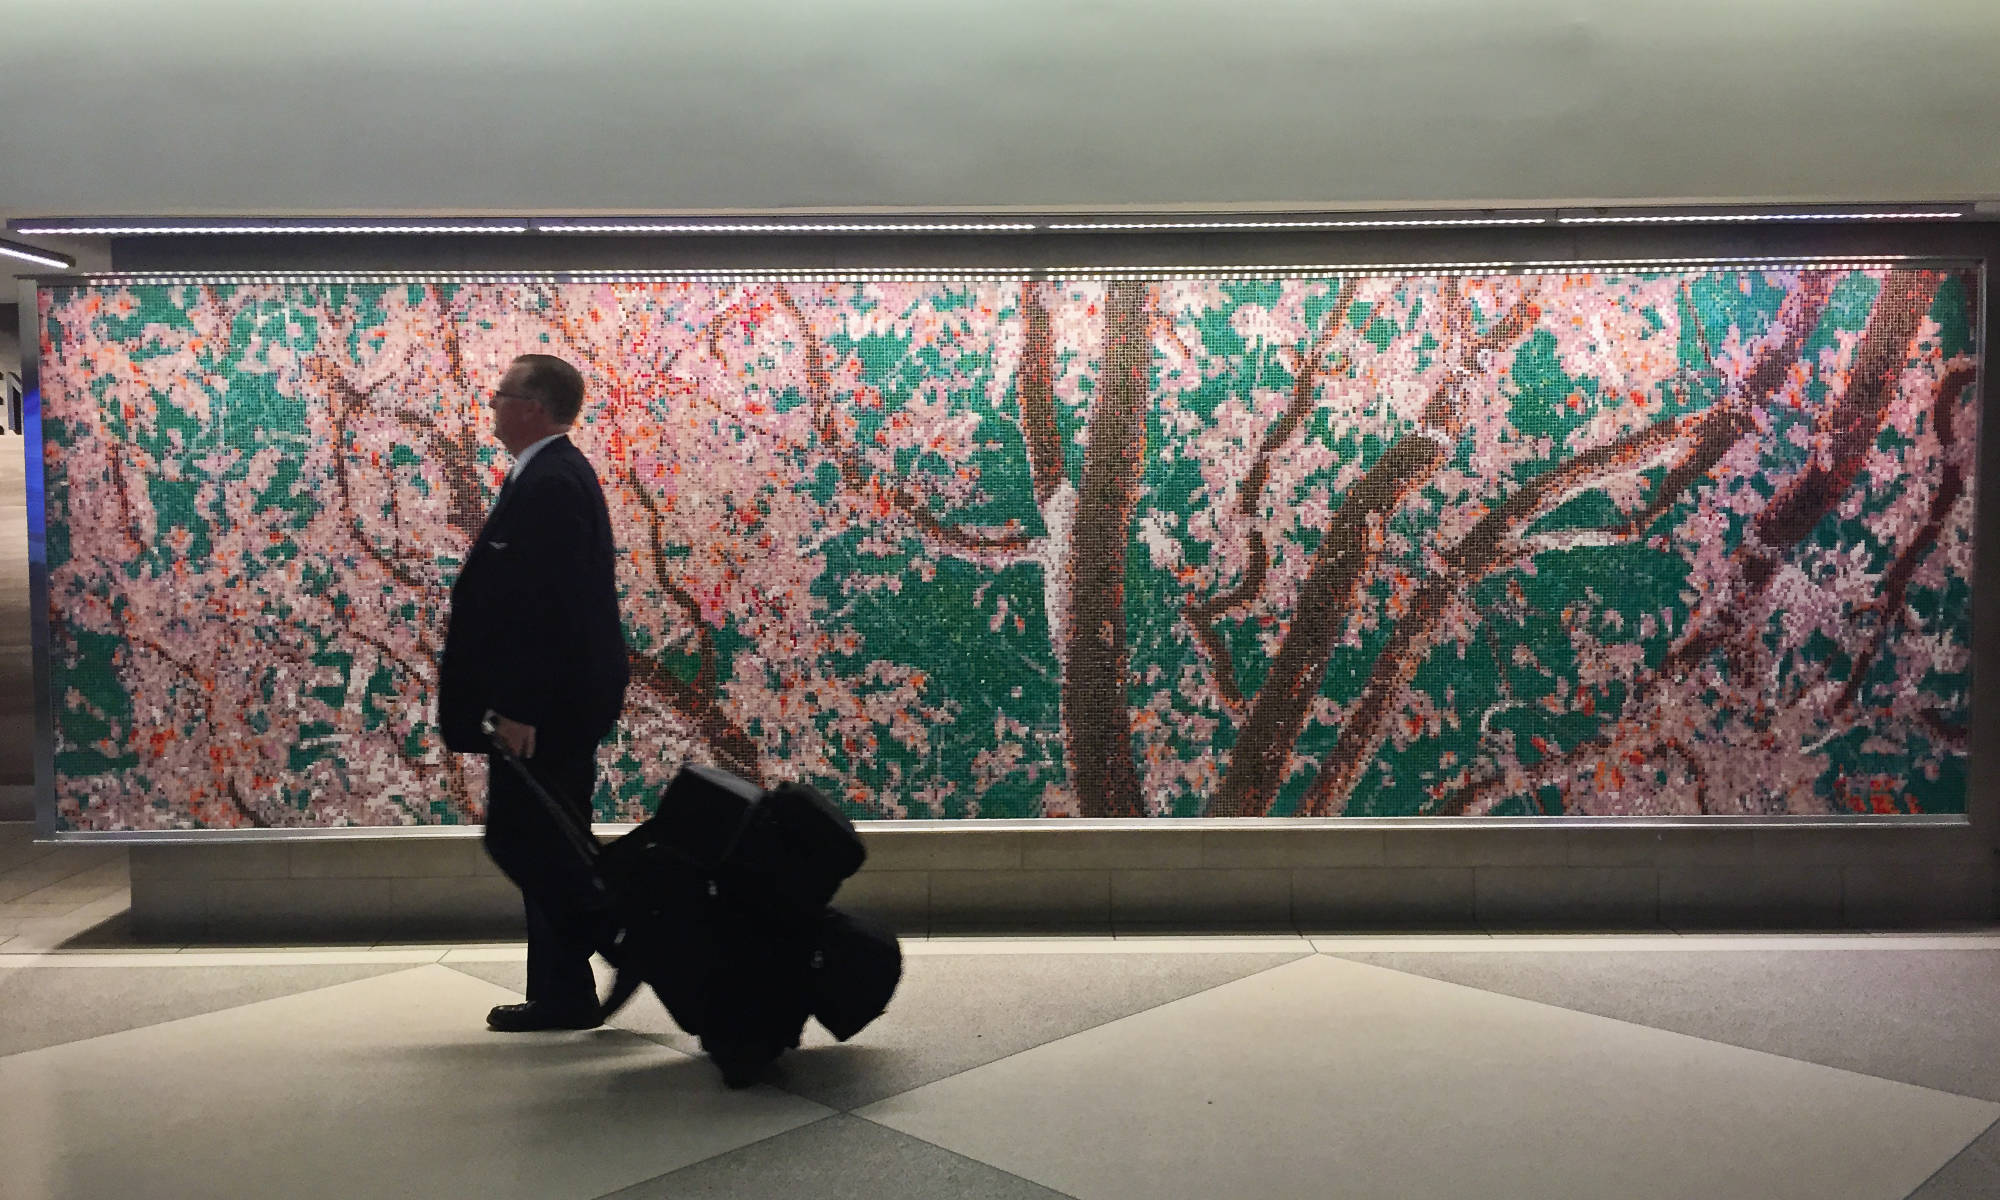 01111033-philadelphia-international-airport-ava-blitz-pink-cherry-blossom-tree-mosaic-pattern_artaic_mosaic